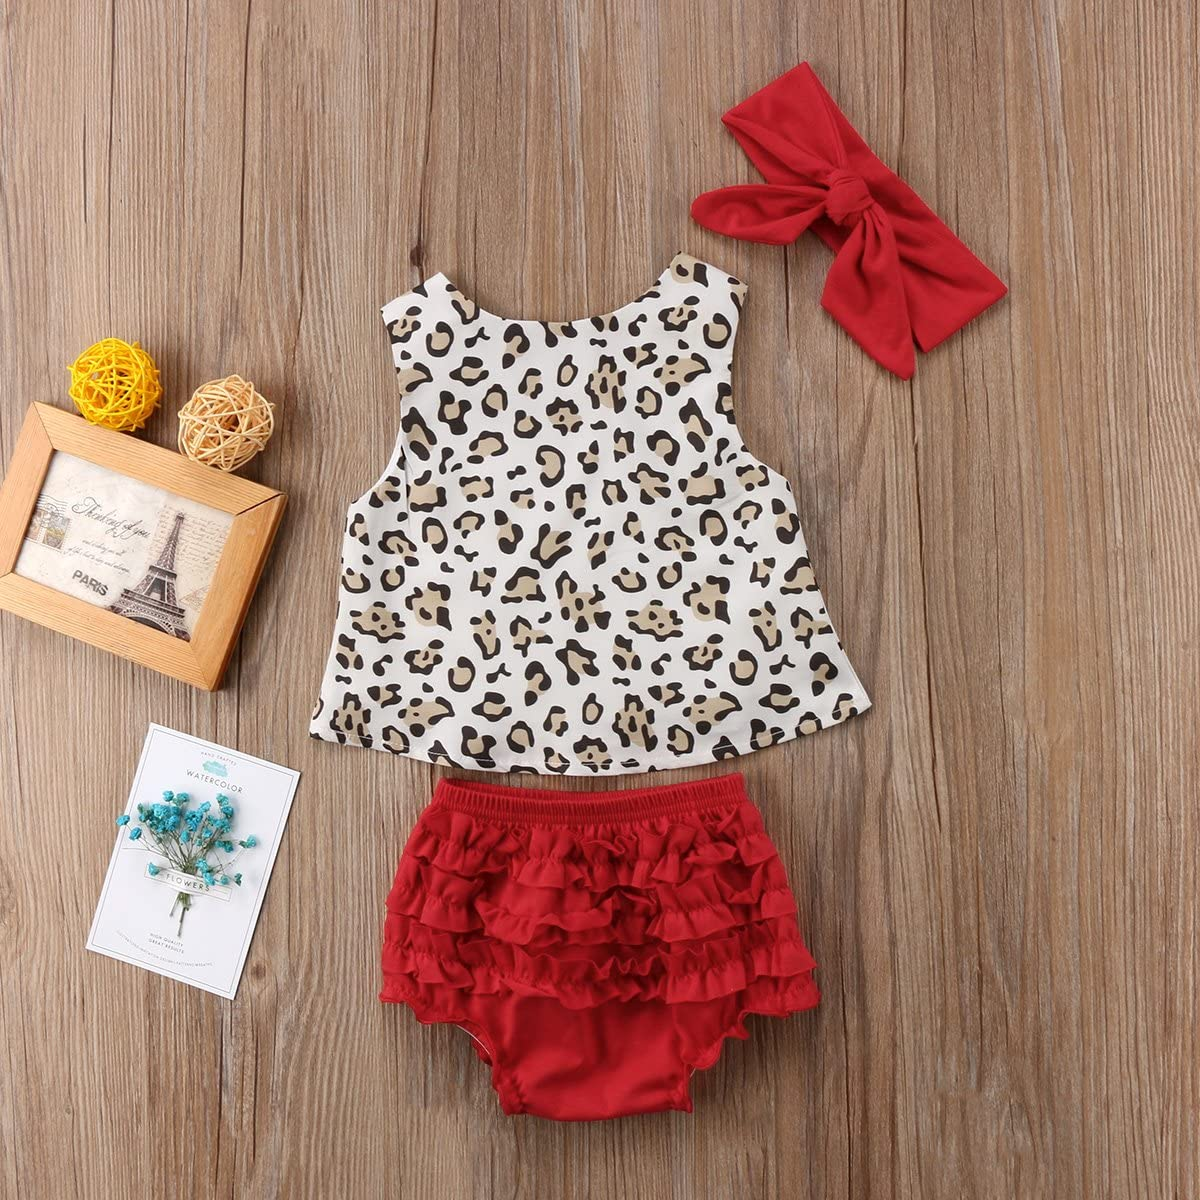 Newborn Baby Girl Vest Shorts Outfits Leopard Sleeveless Vest Tops Floral Ruffles Short Outfits with Headband Clothes